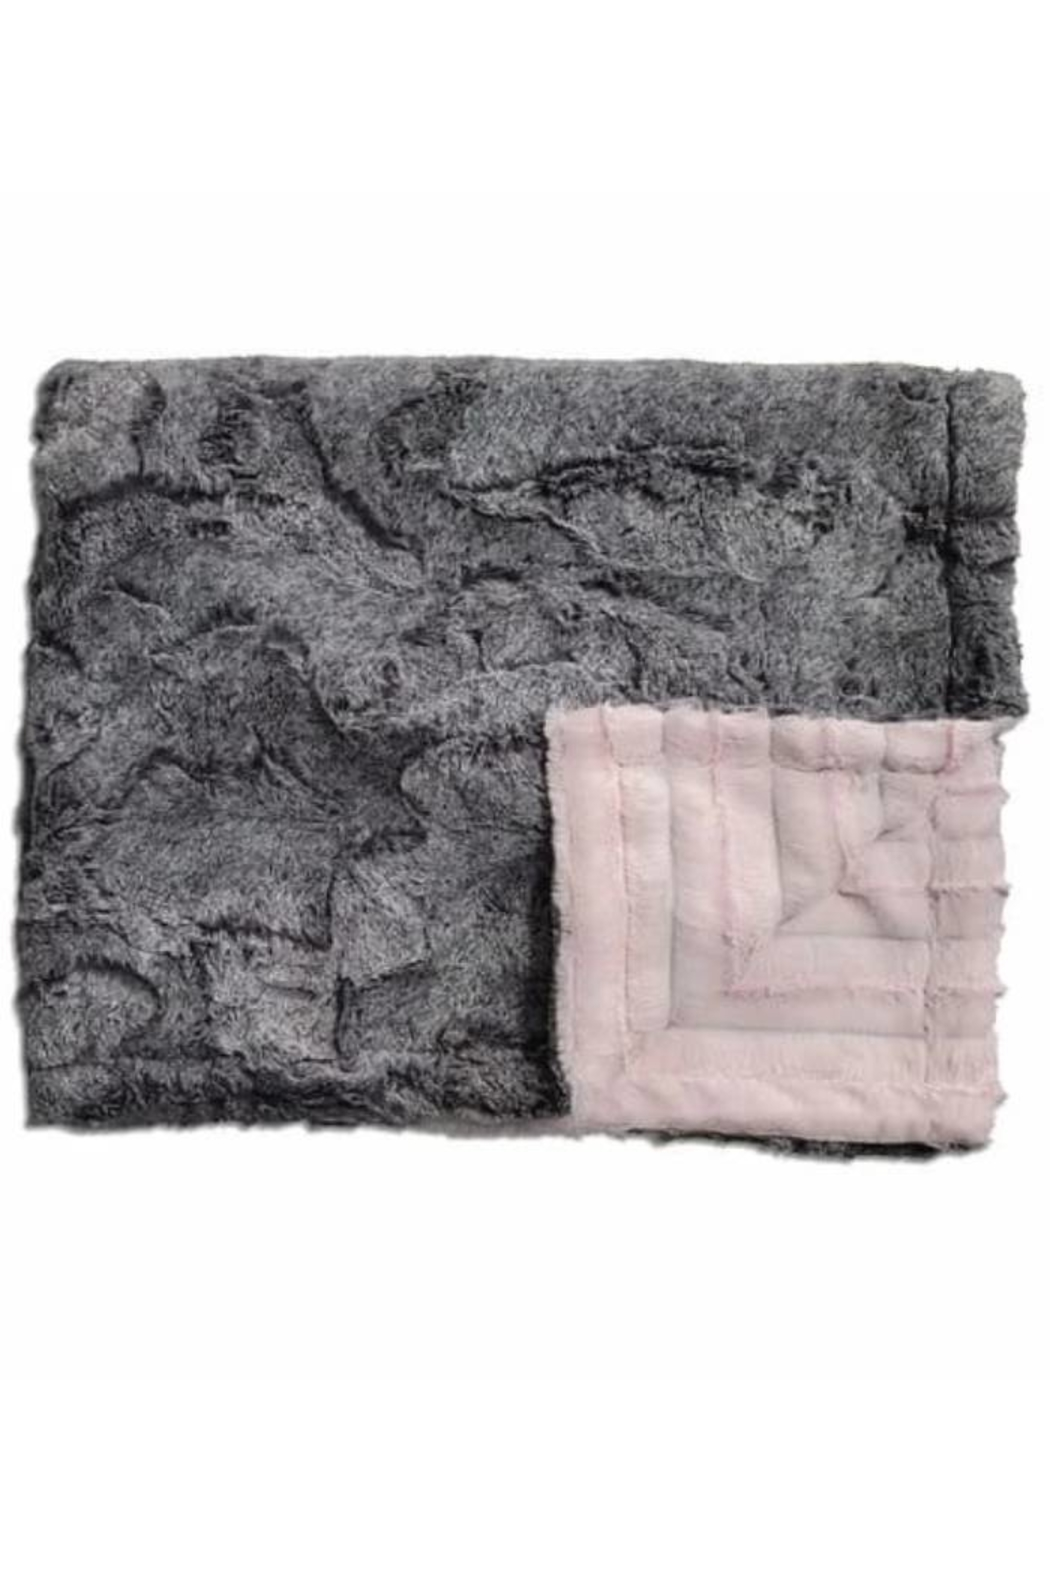 Winx+Blinx Pinkalicious Minky Blankets (34 X 29 Inches)for Newborn Baby Boys Girls Winter Swaddle - Main Image